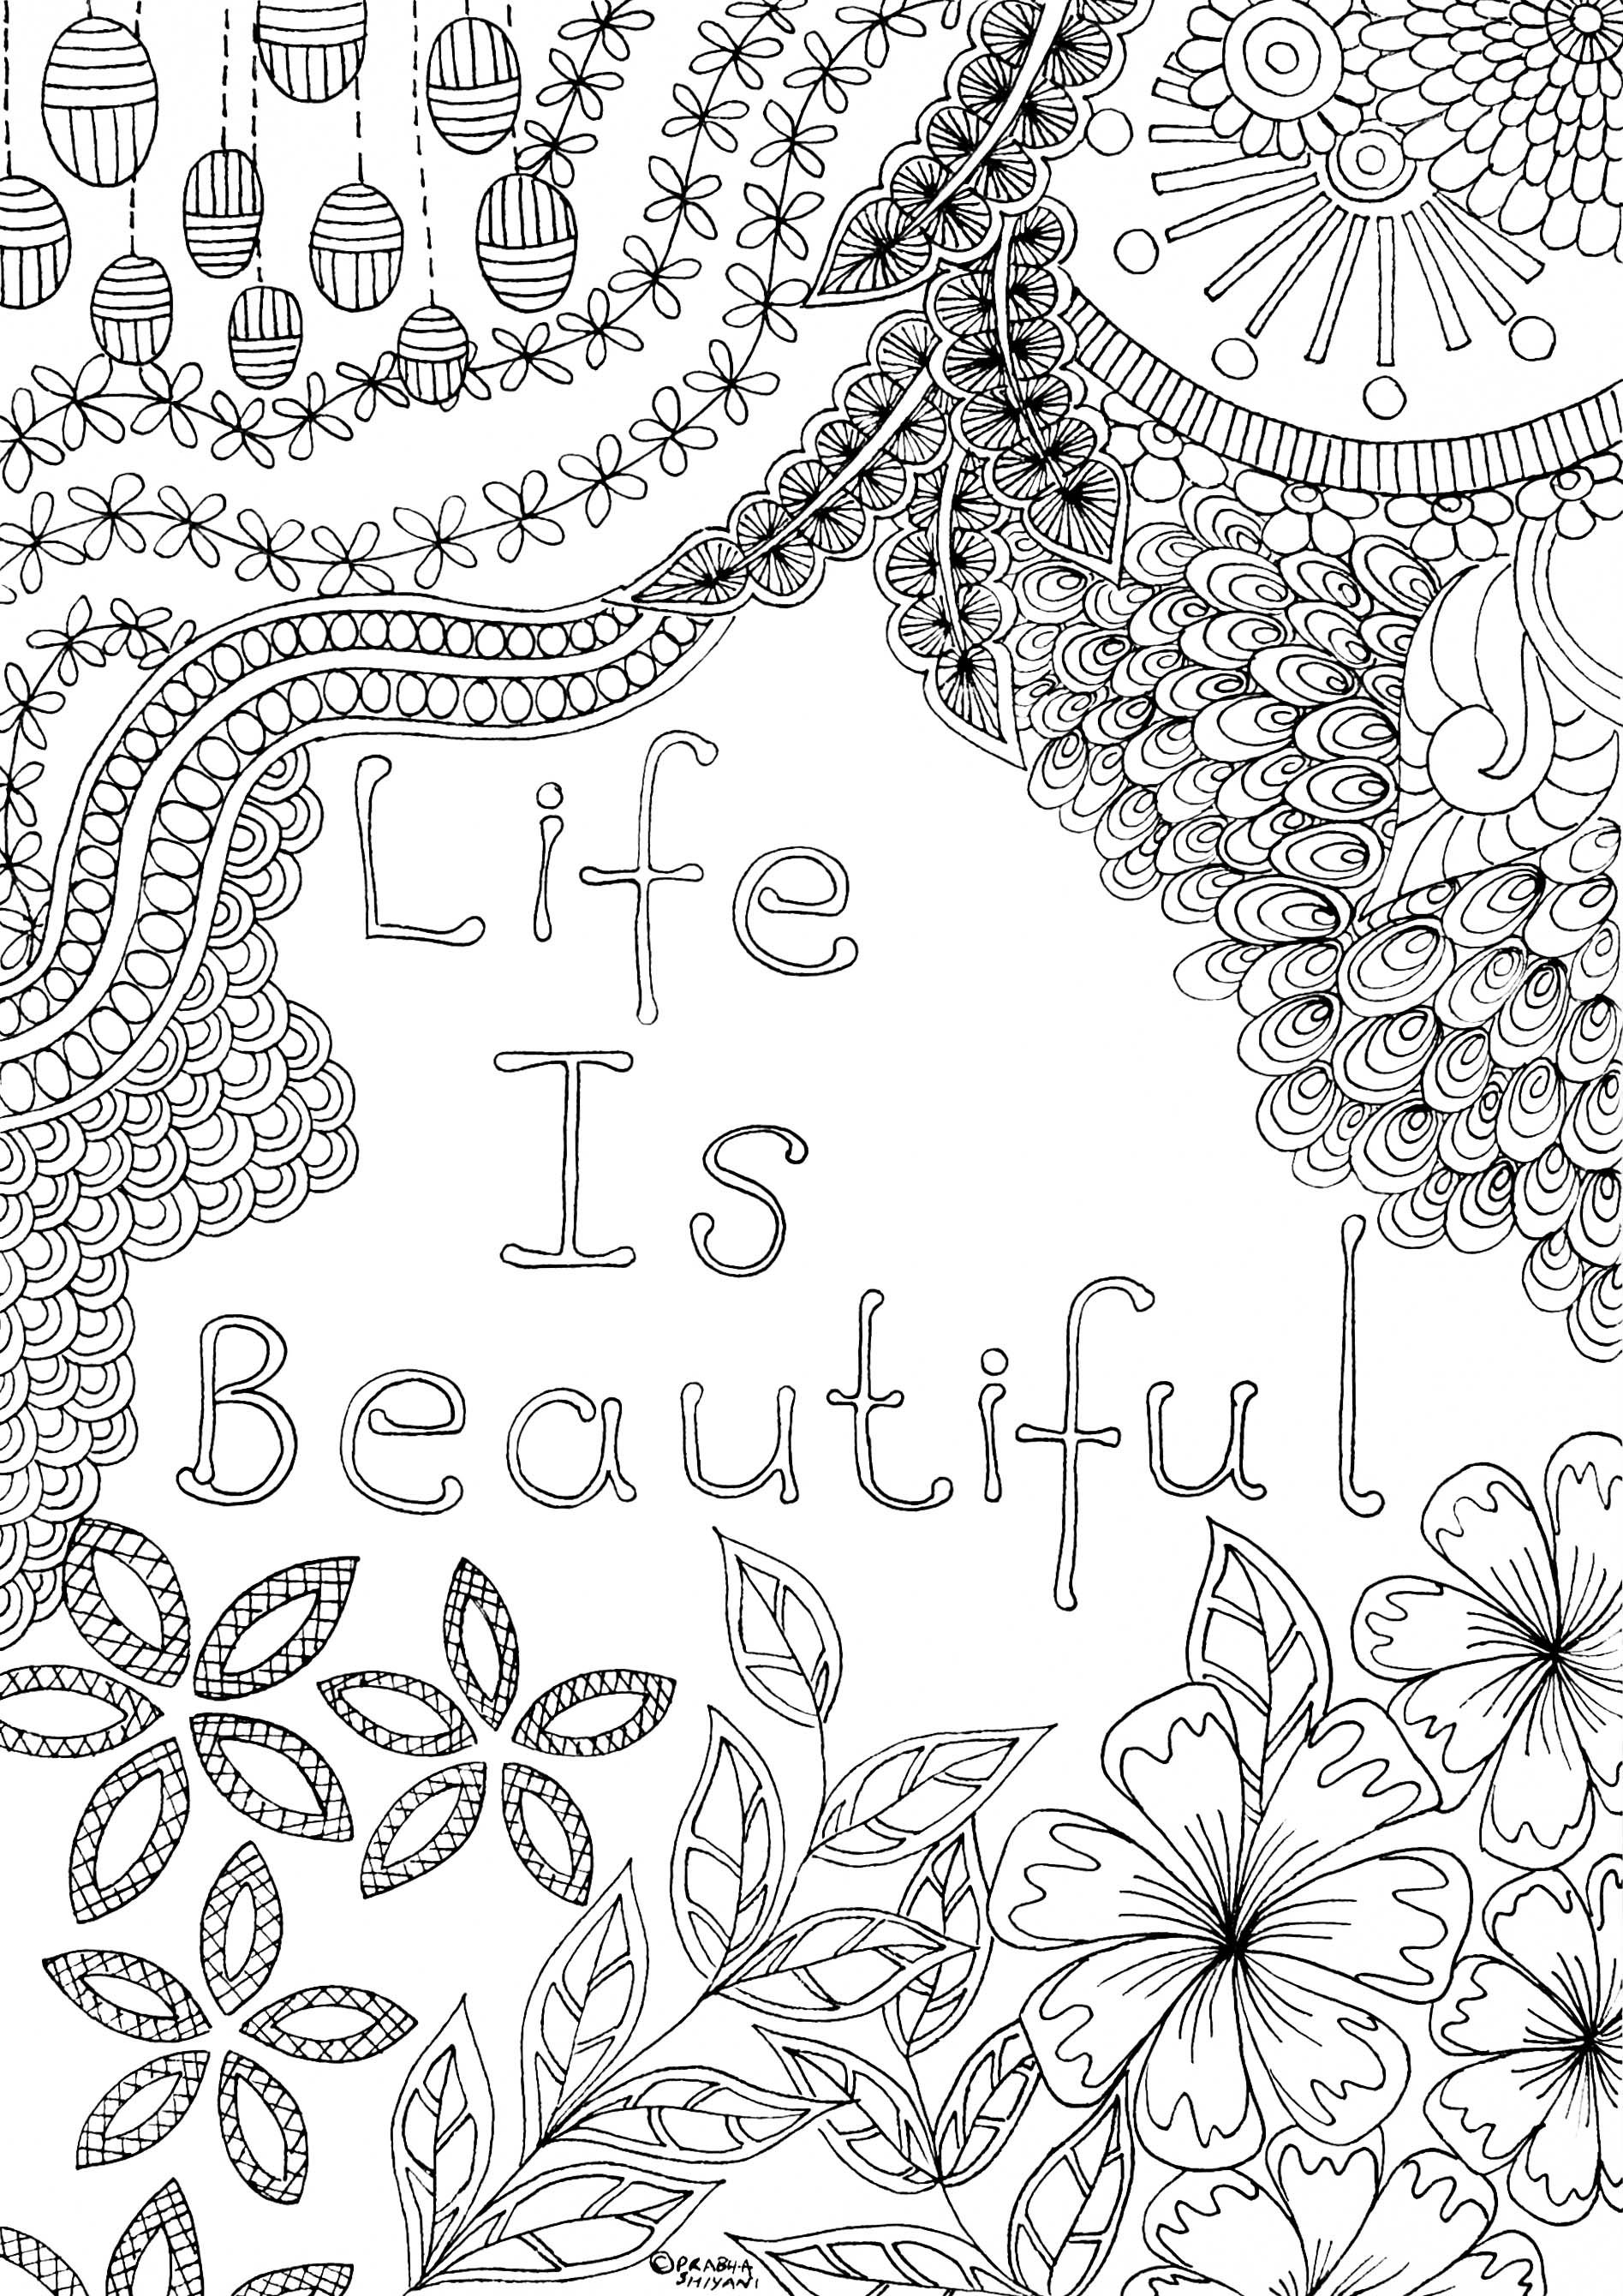 Mindful Affirmation Colouring Book